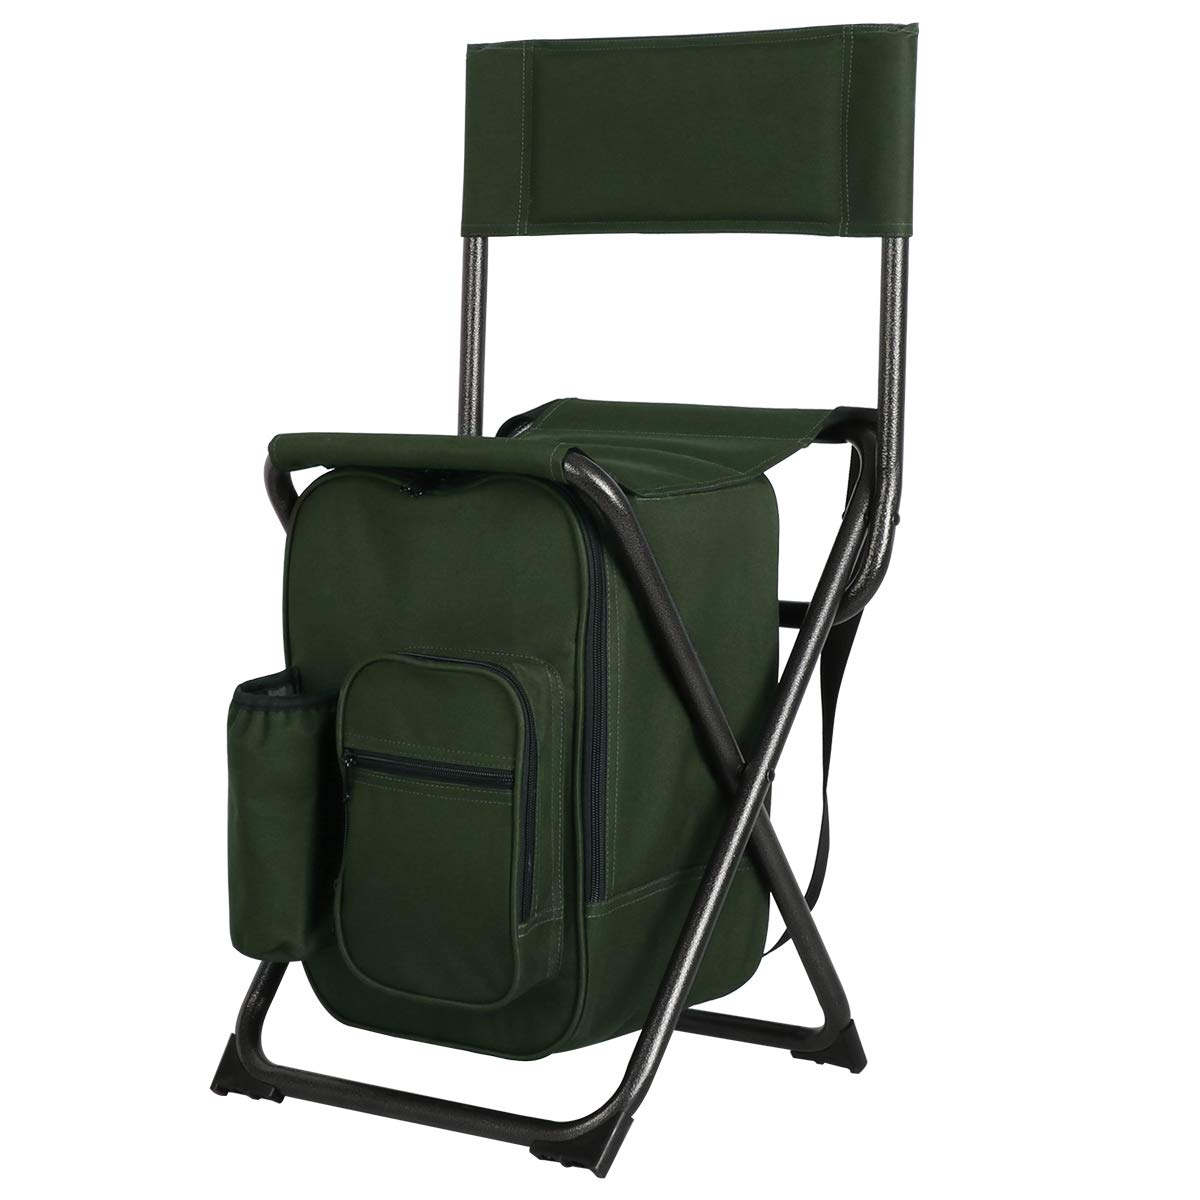 PORTAL Lightweight Backrest Stool Compact Folding Chair Seat with Cooler Bag and Shoulder Straps for Fishing, Camping, Hiking, Supports 250 lbs by PORTAL